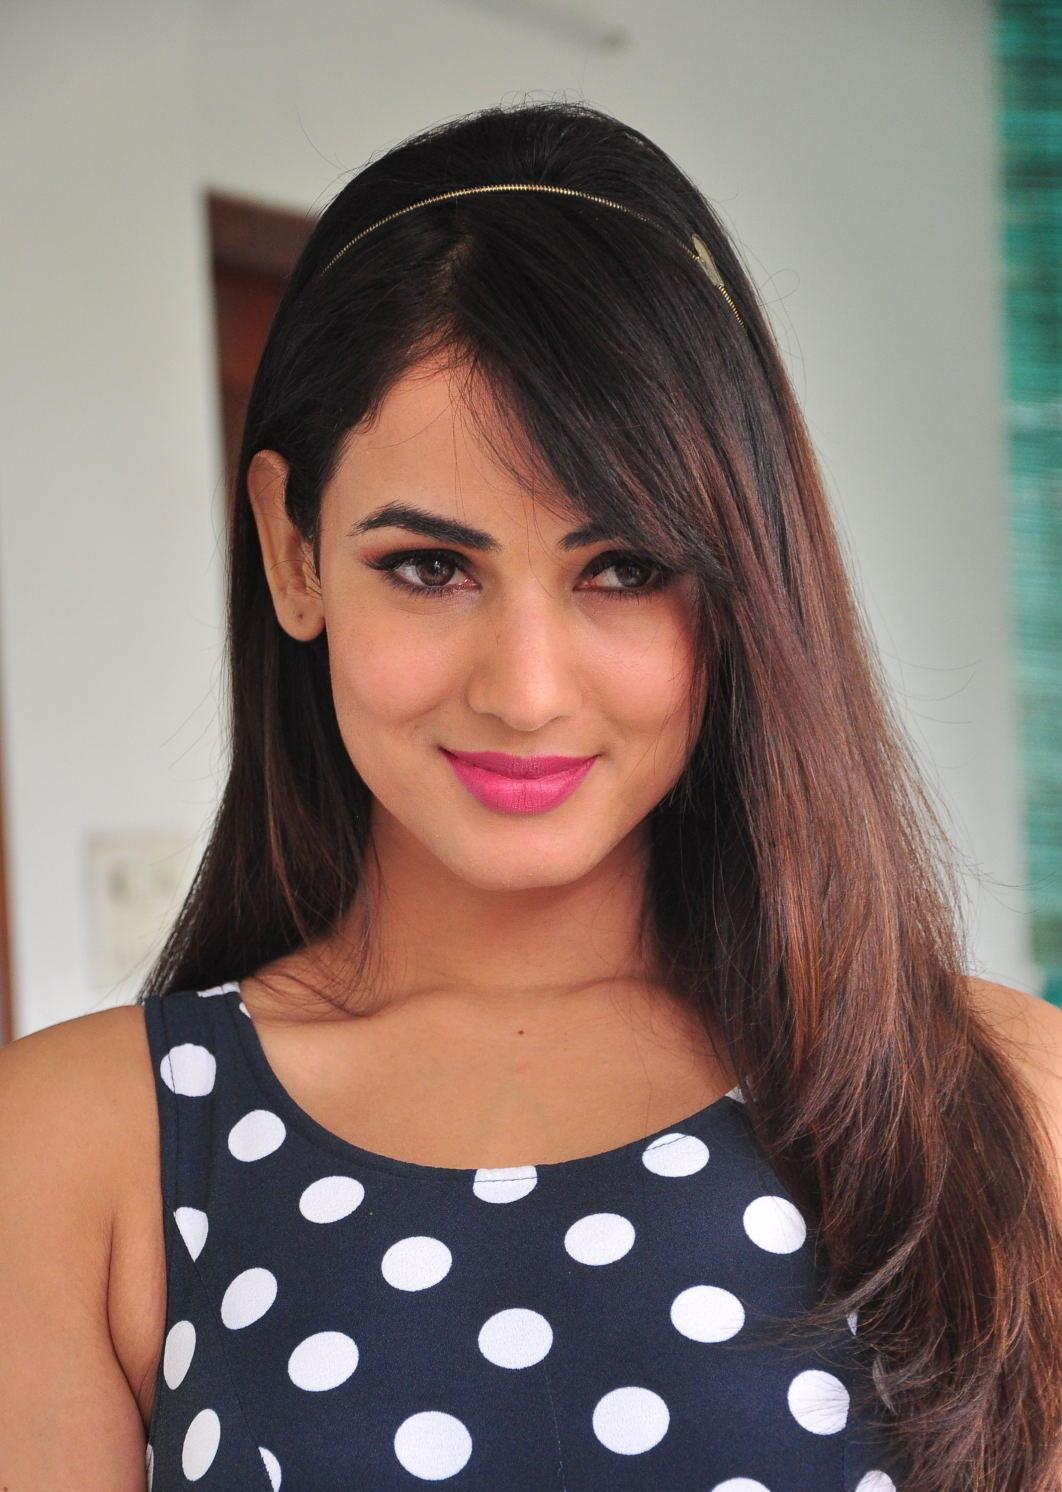 Sonal Chauhan Looks Irresistibly Sexy In A Black Polka Dot -4416